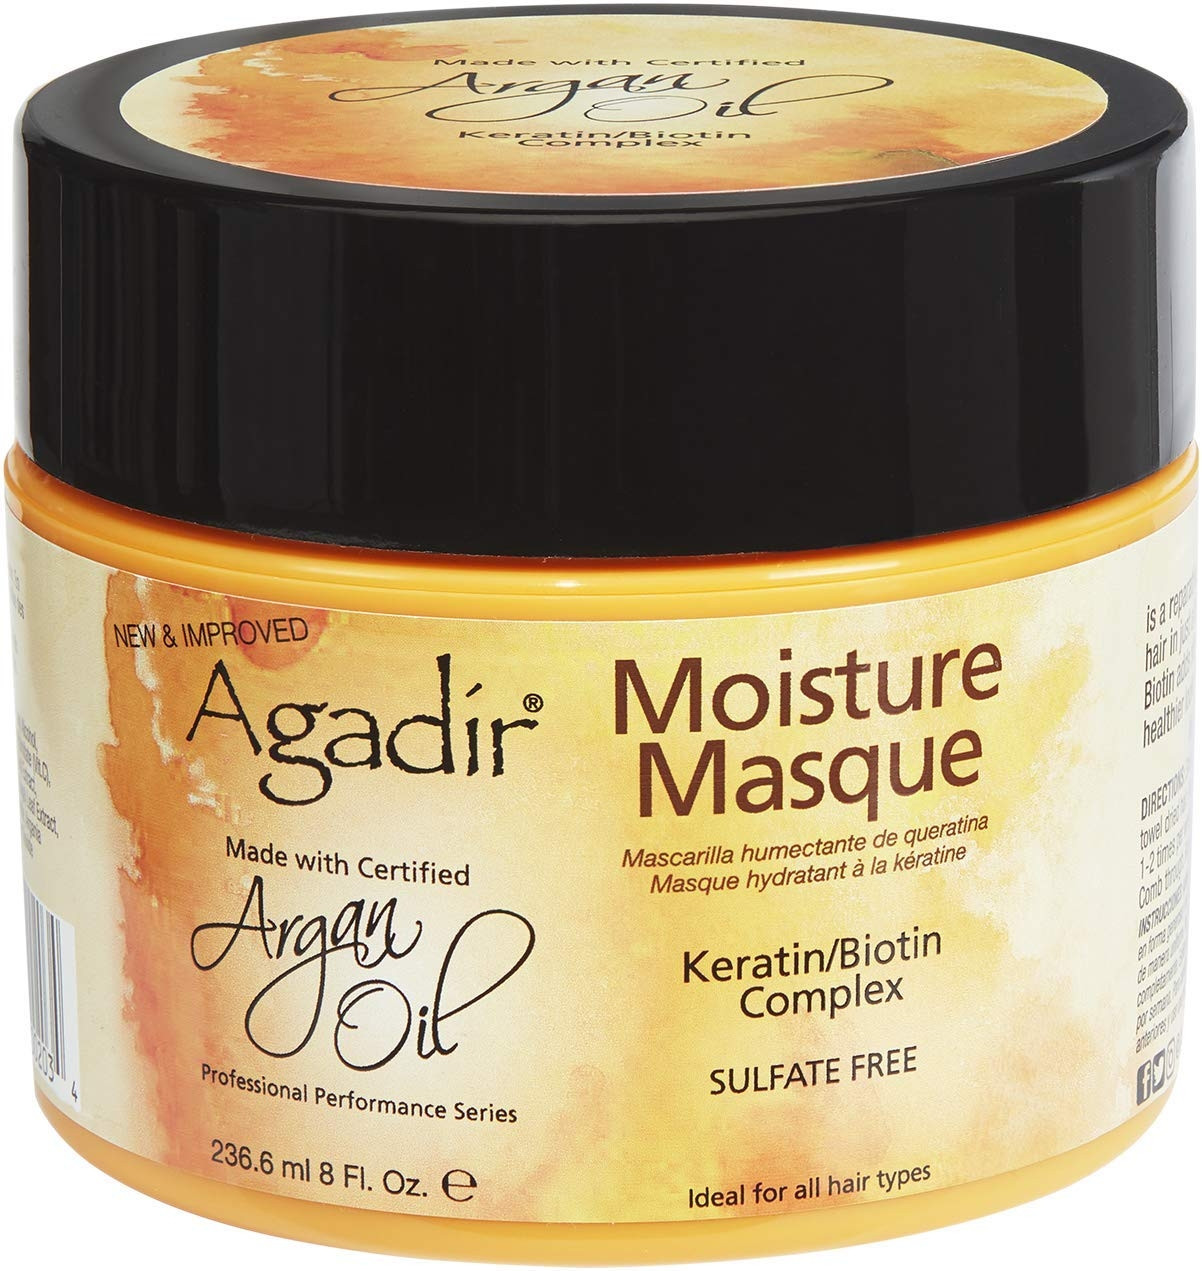 AGADIR ARGAN OIL MOISTURE MASK 236.6 ML